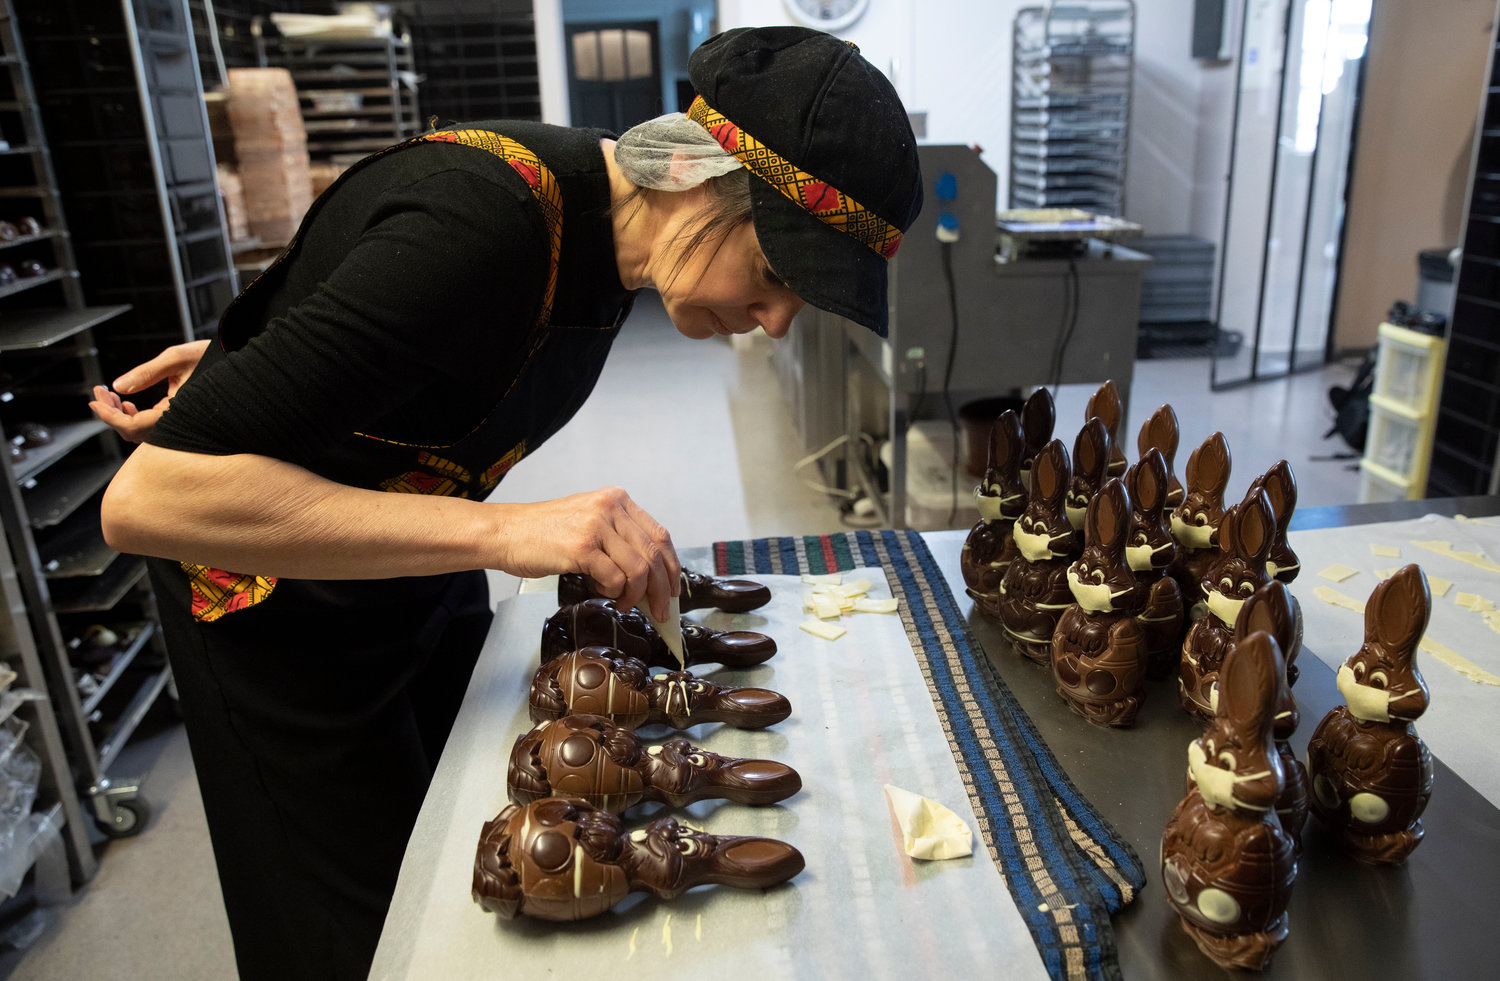 DECORATING — Genevieve Trepant decorates chocolate rabbits at her shop, Cocoatree, in Lonzee, Belgium.